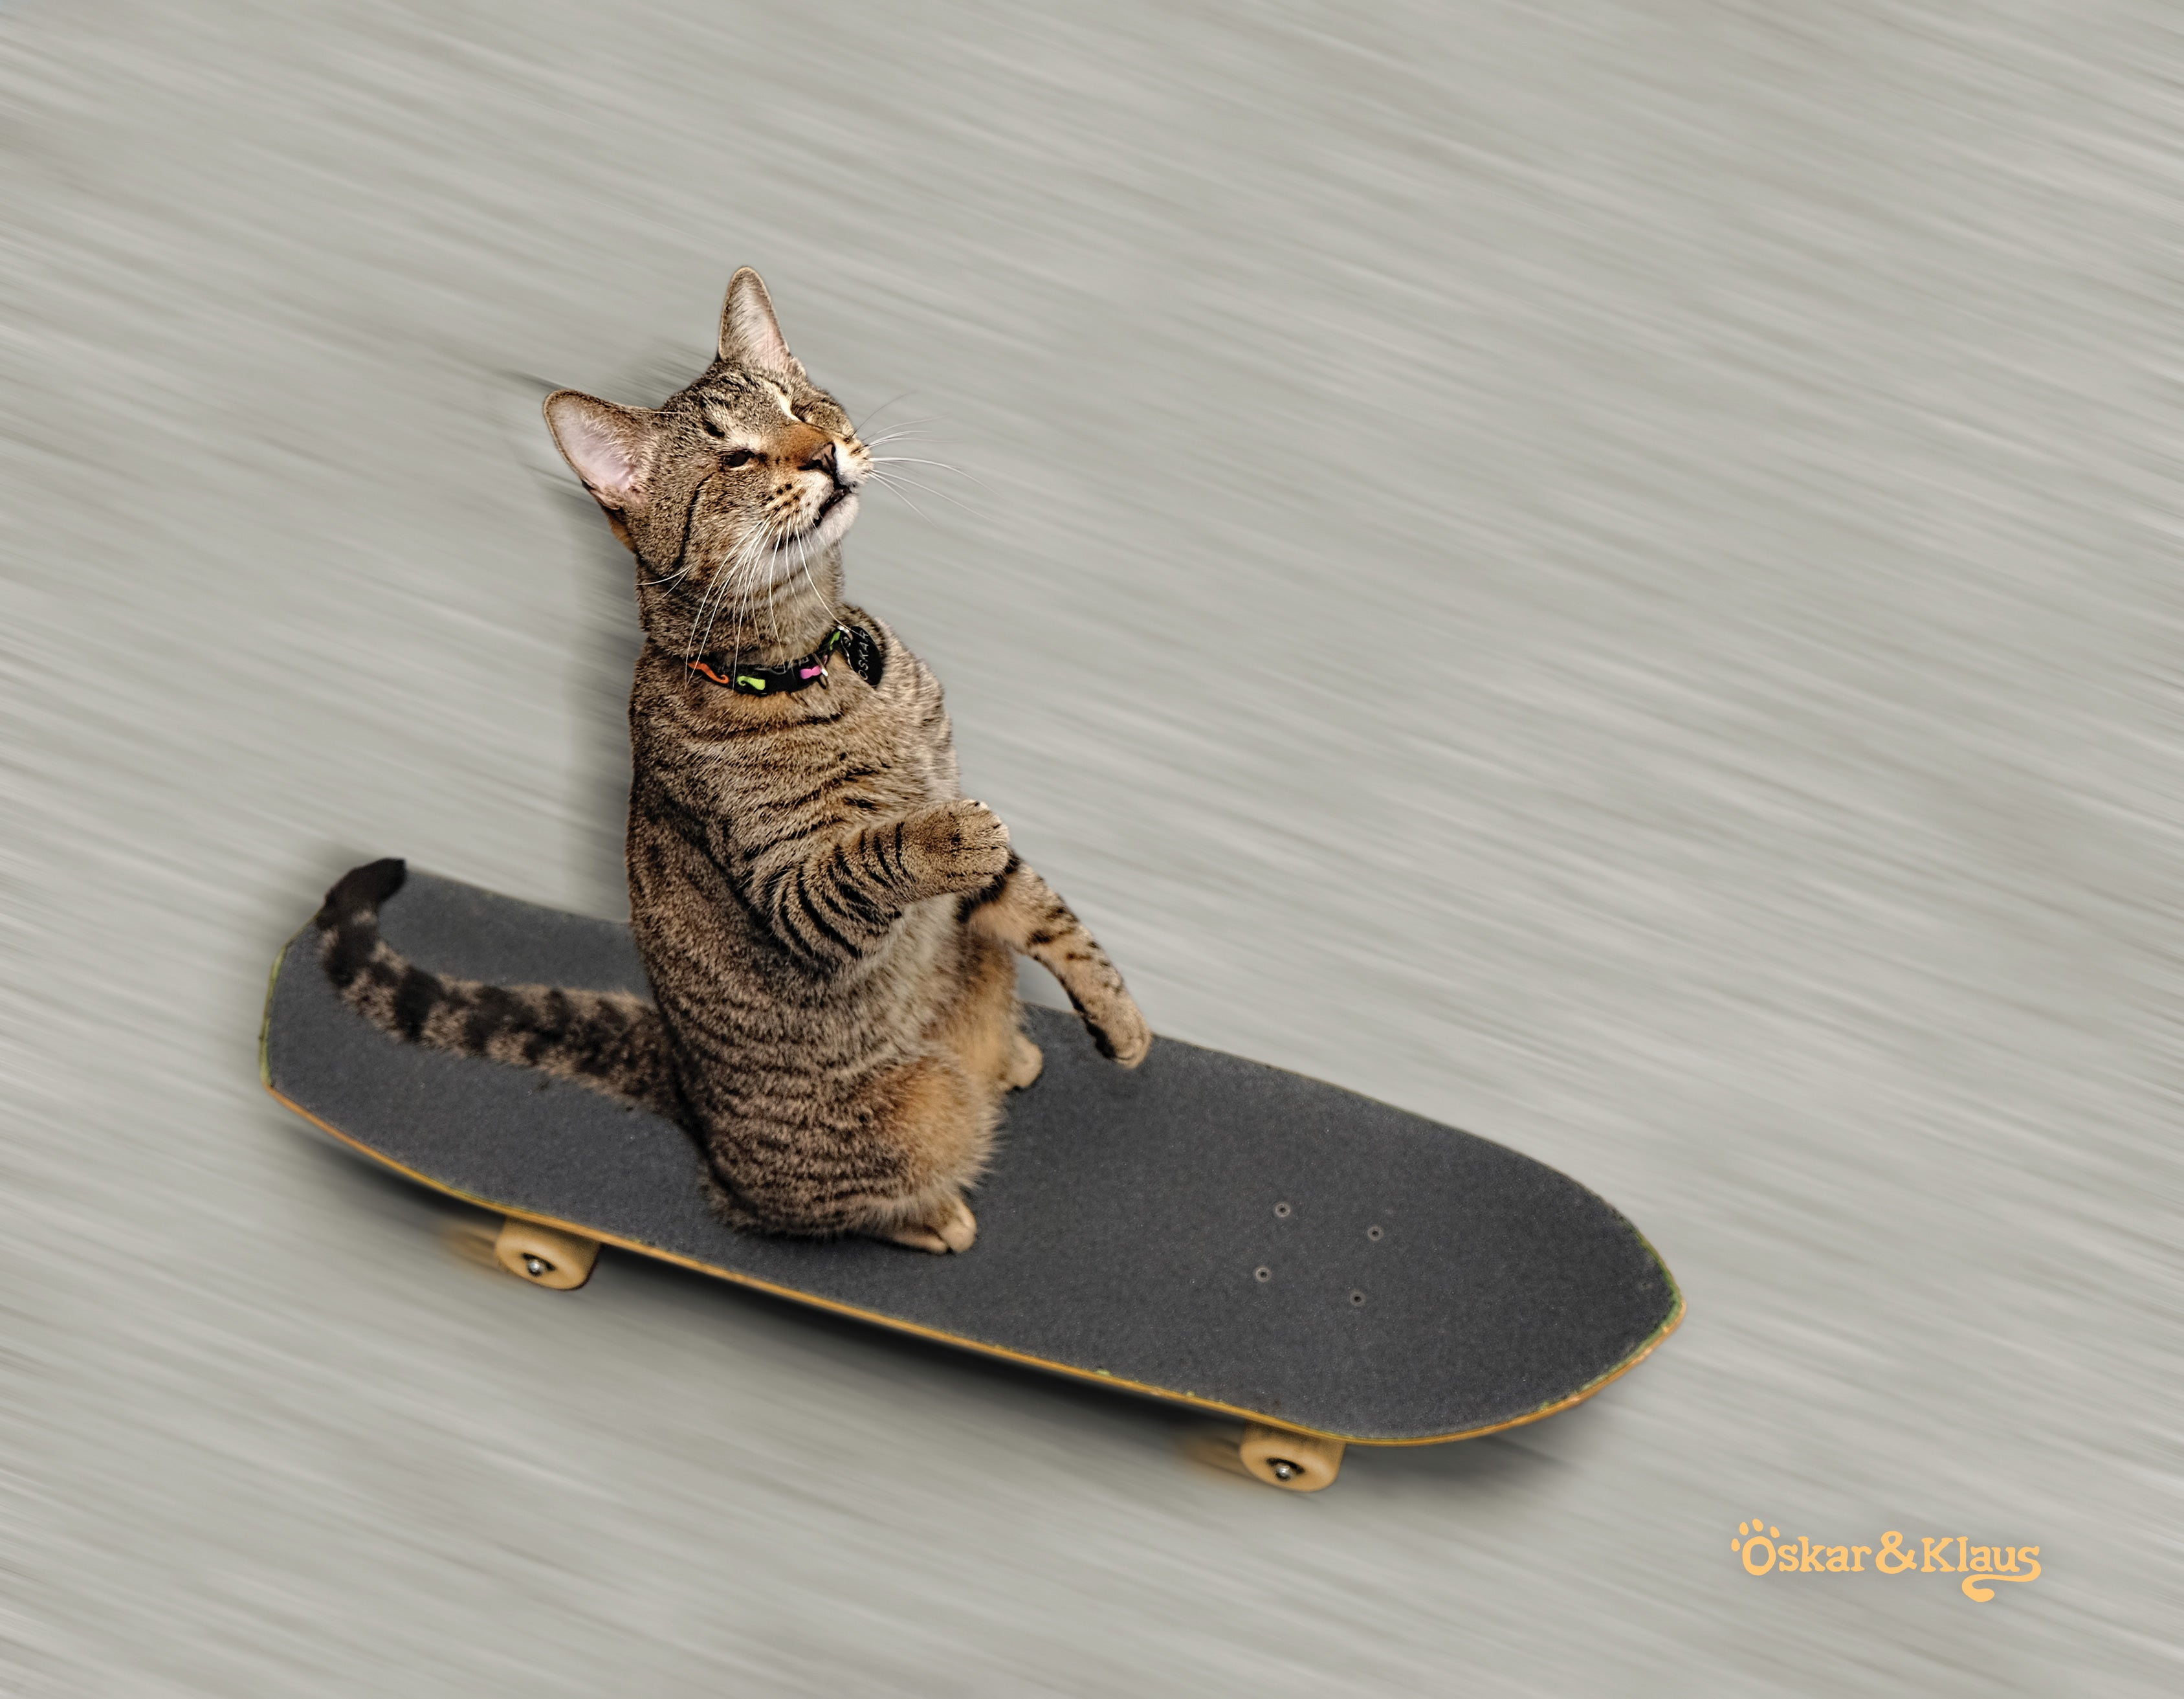 Oskar is riding a skateboard!